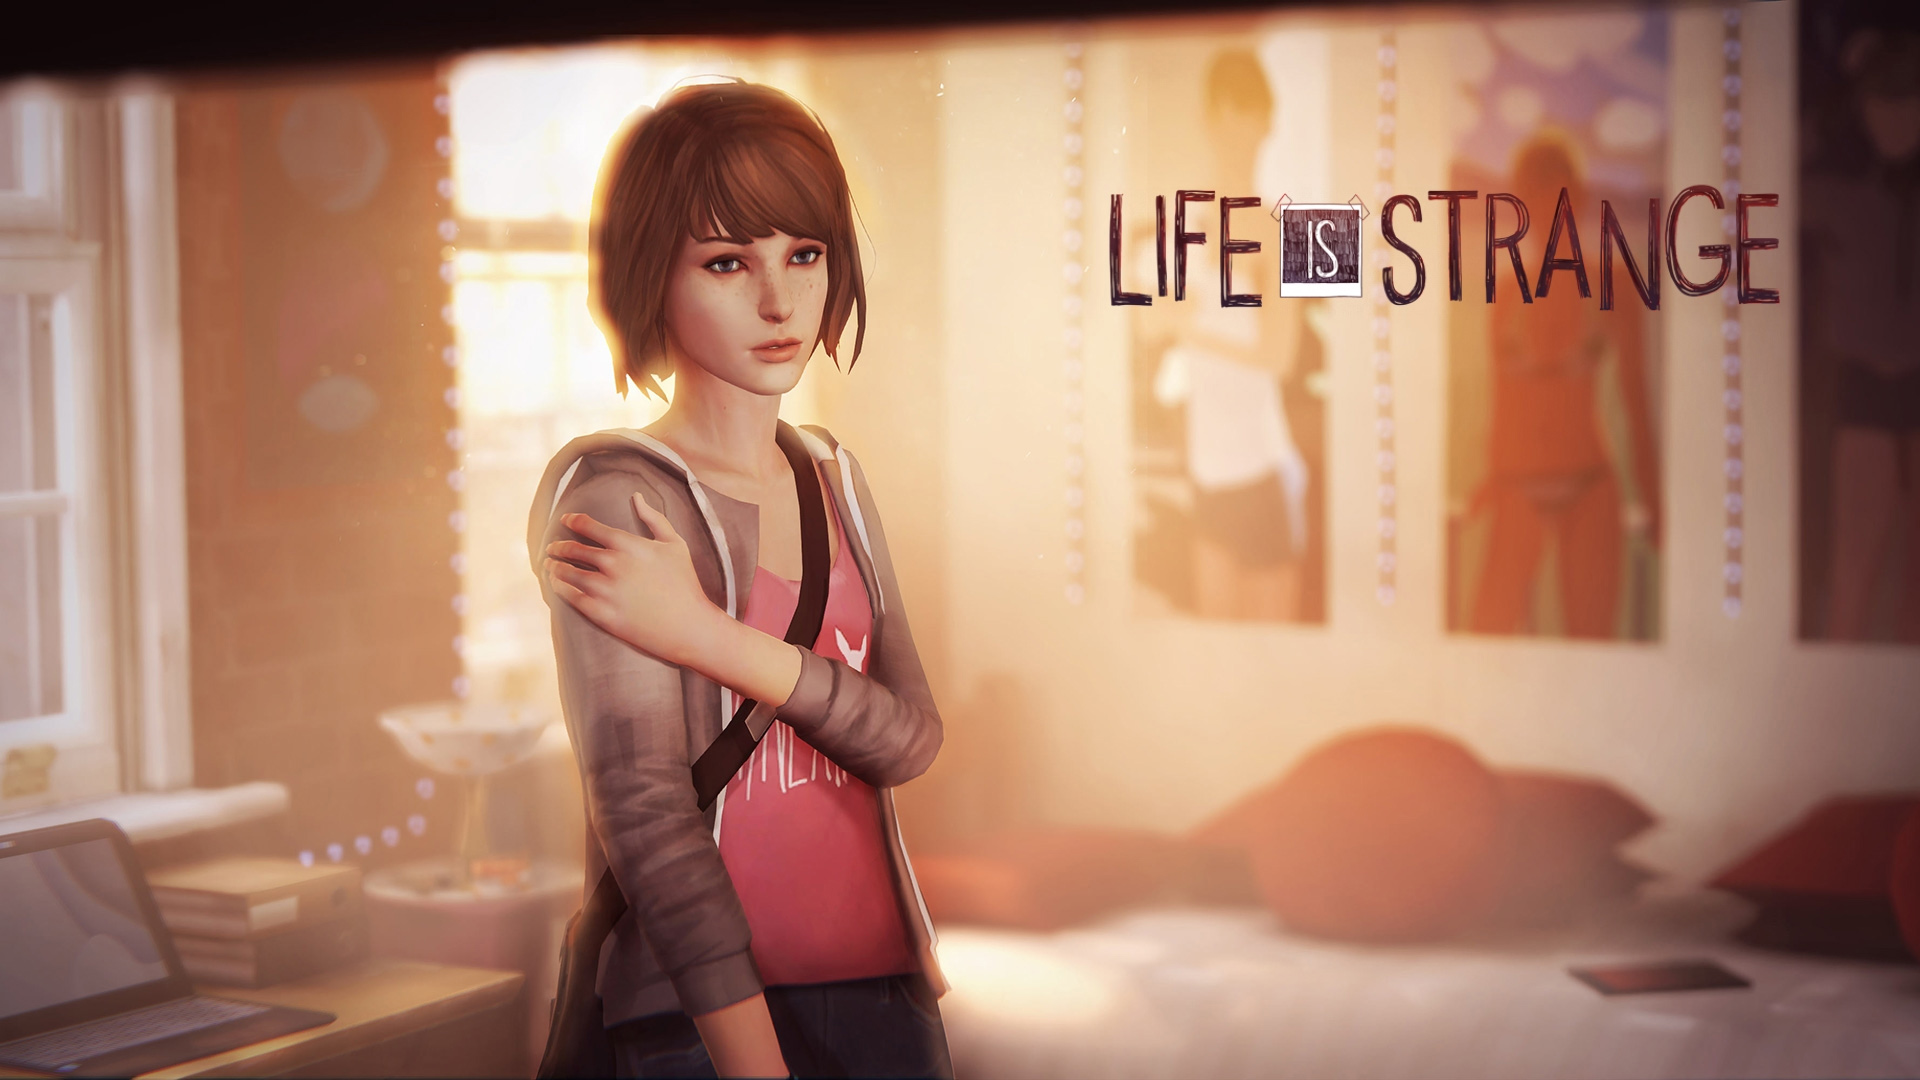 Life is Strange Steam Summer Sale